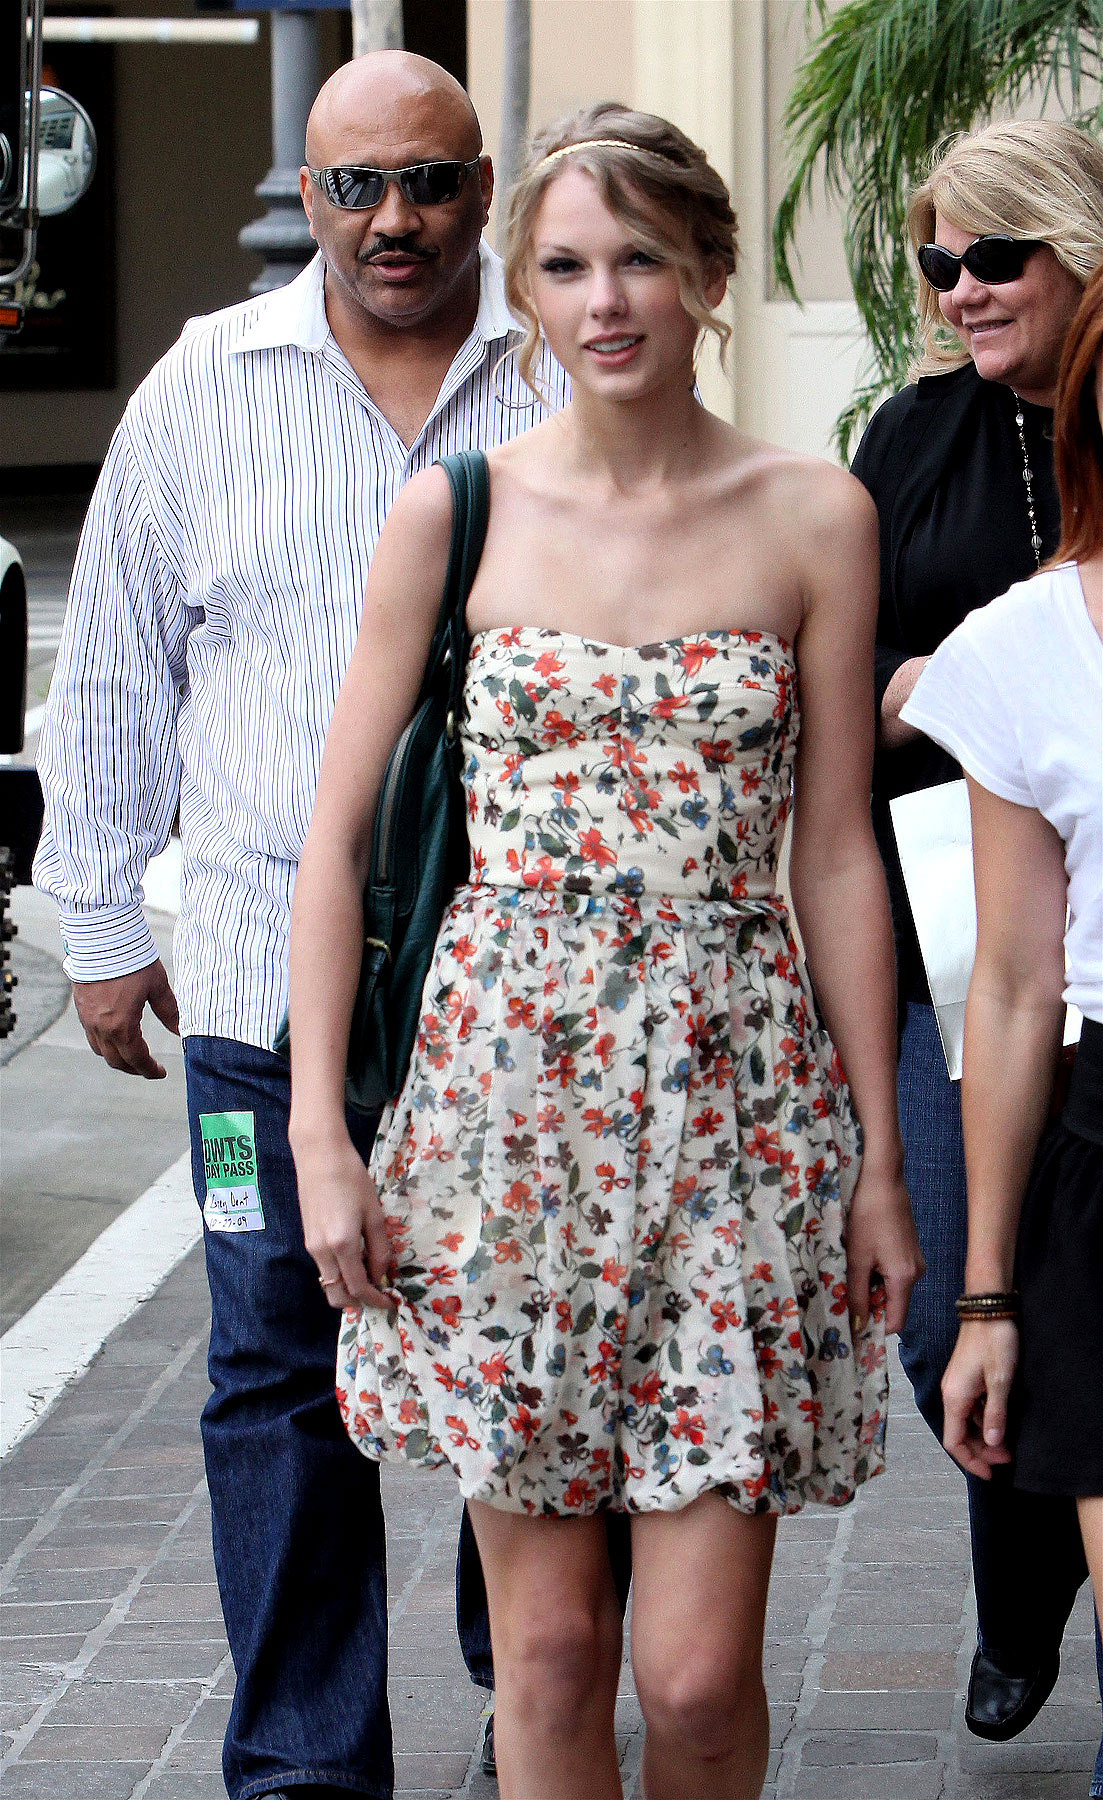 PHOTO GALLERY: Taylor Swift is Flirty in Floral